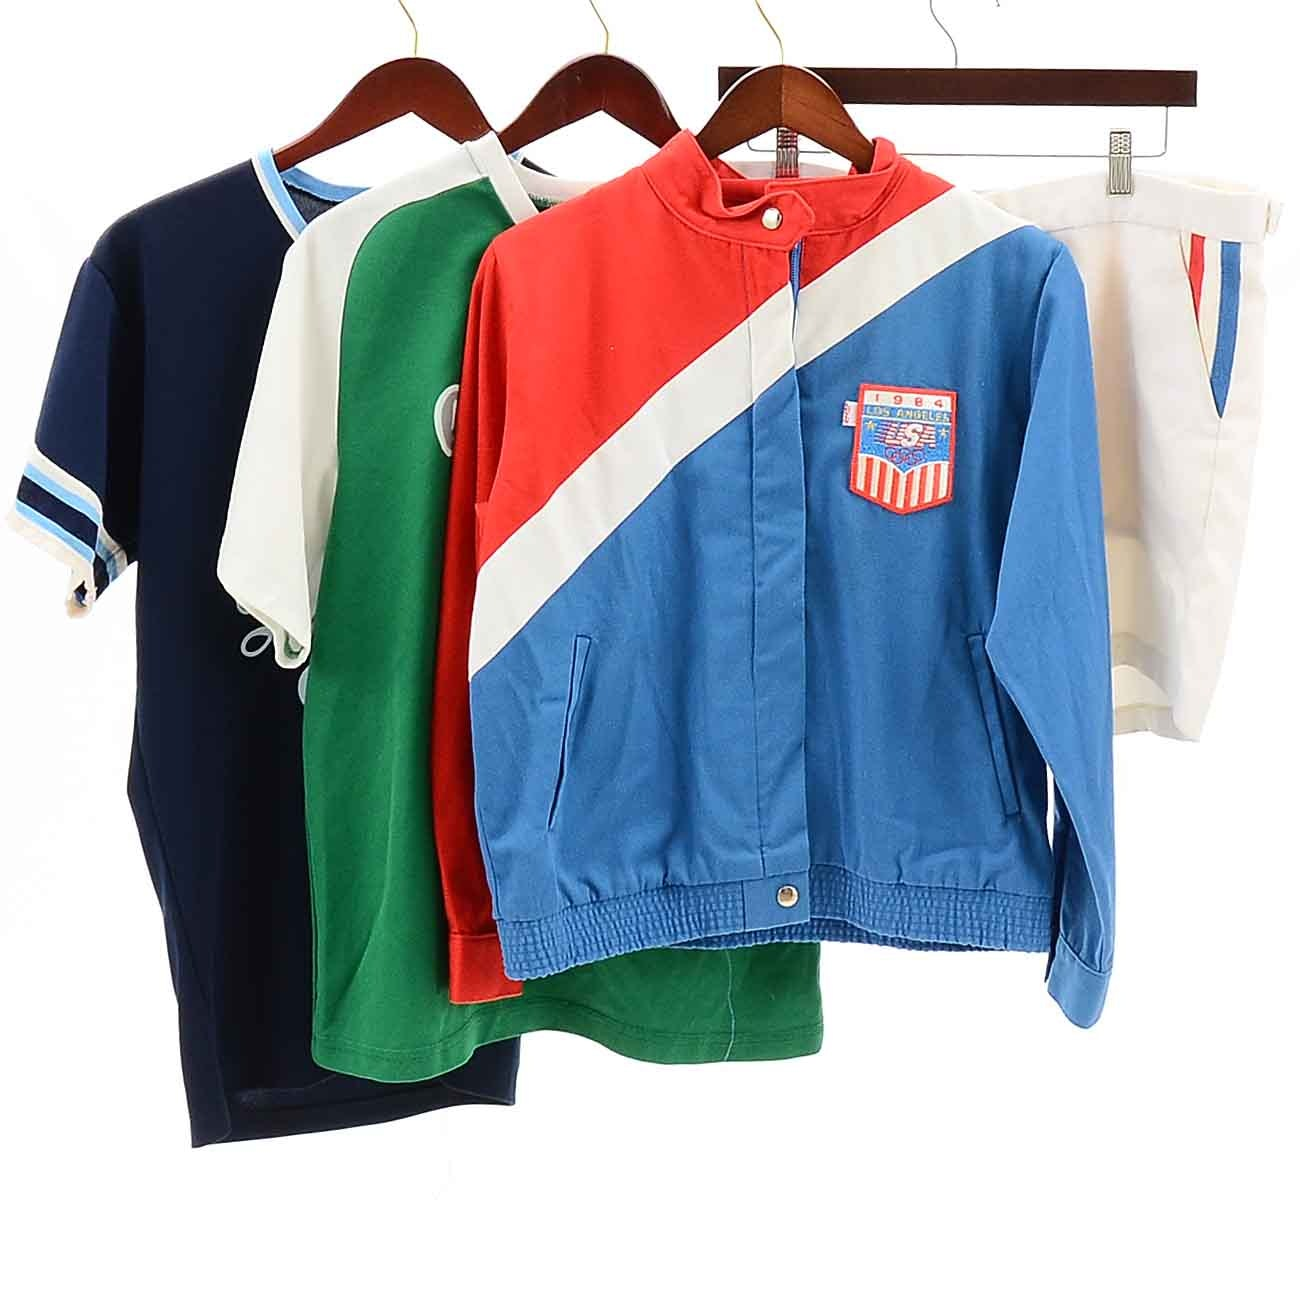 Vintage 1970s and 80s Athletic Apparel